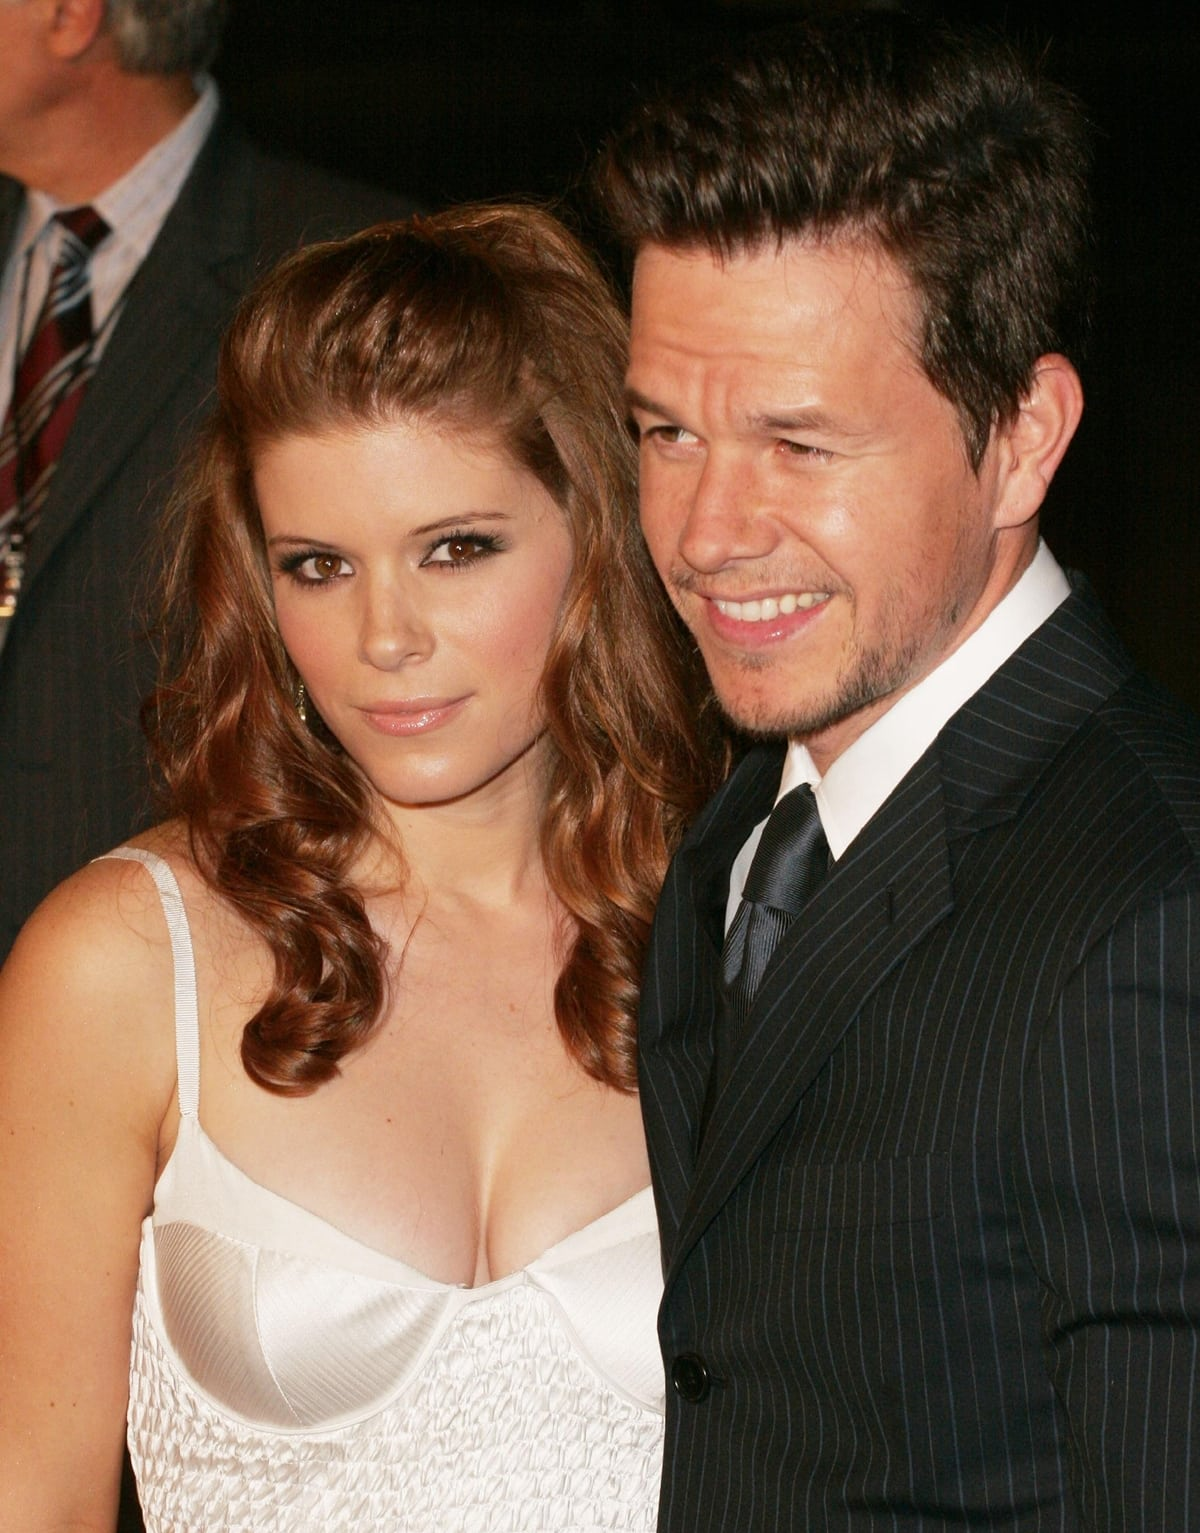 Kate Mara and Mark Wahlberg at the Los Angeles premiere of Shooter